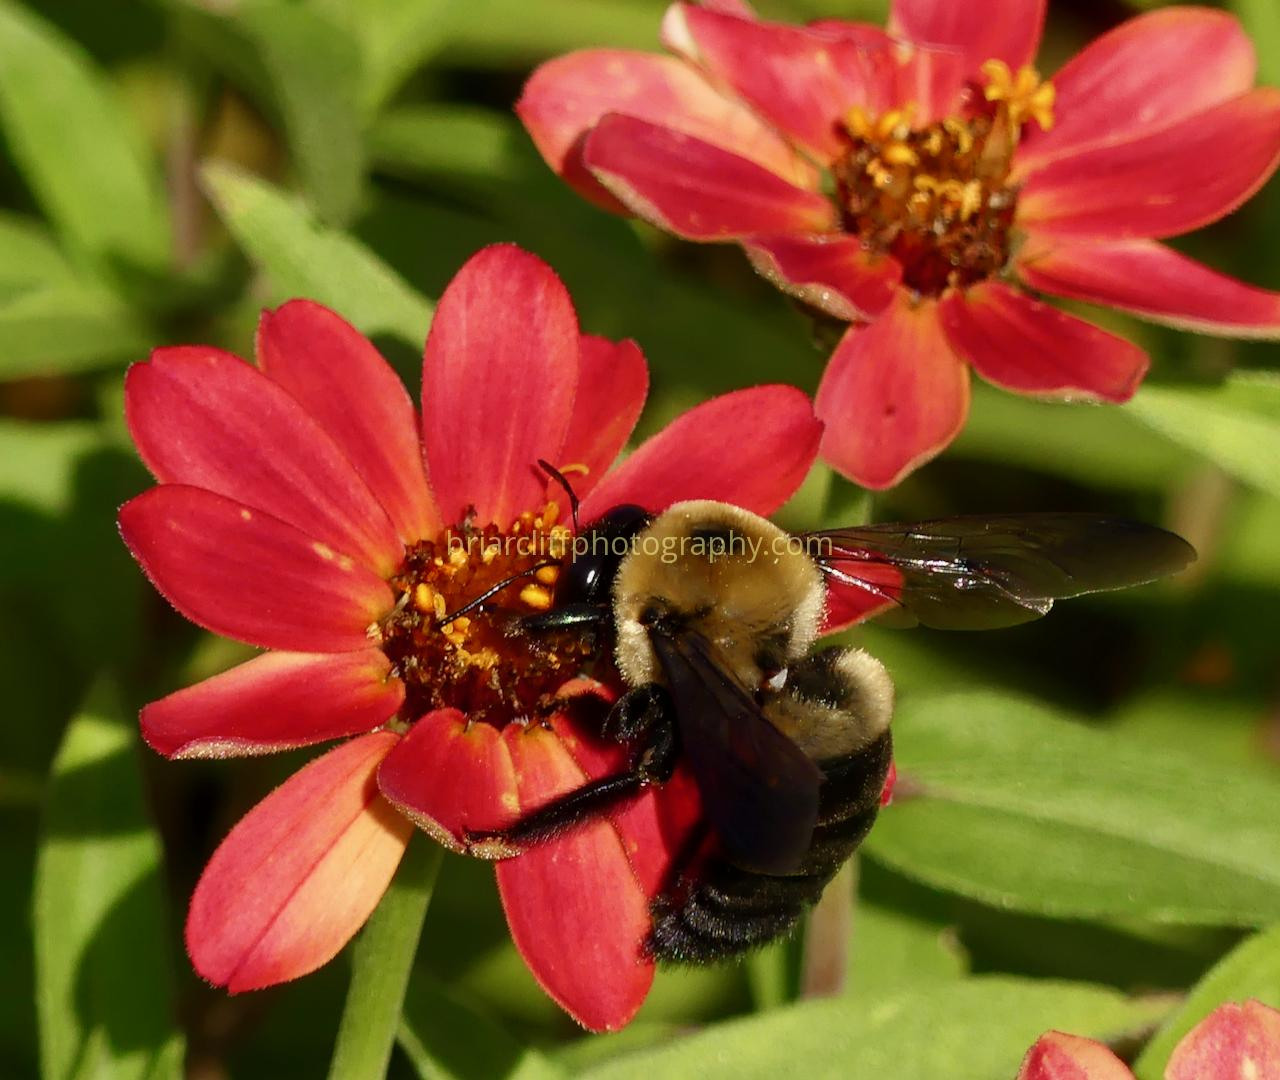 Brown-belted Bumble Bee on Zinnia